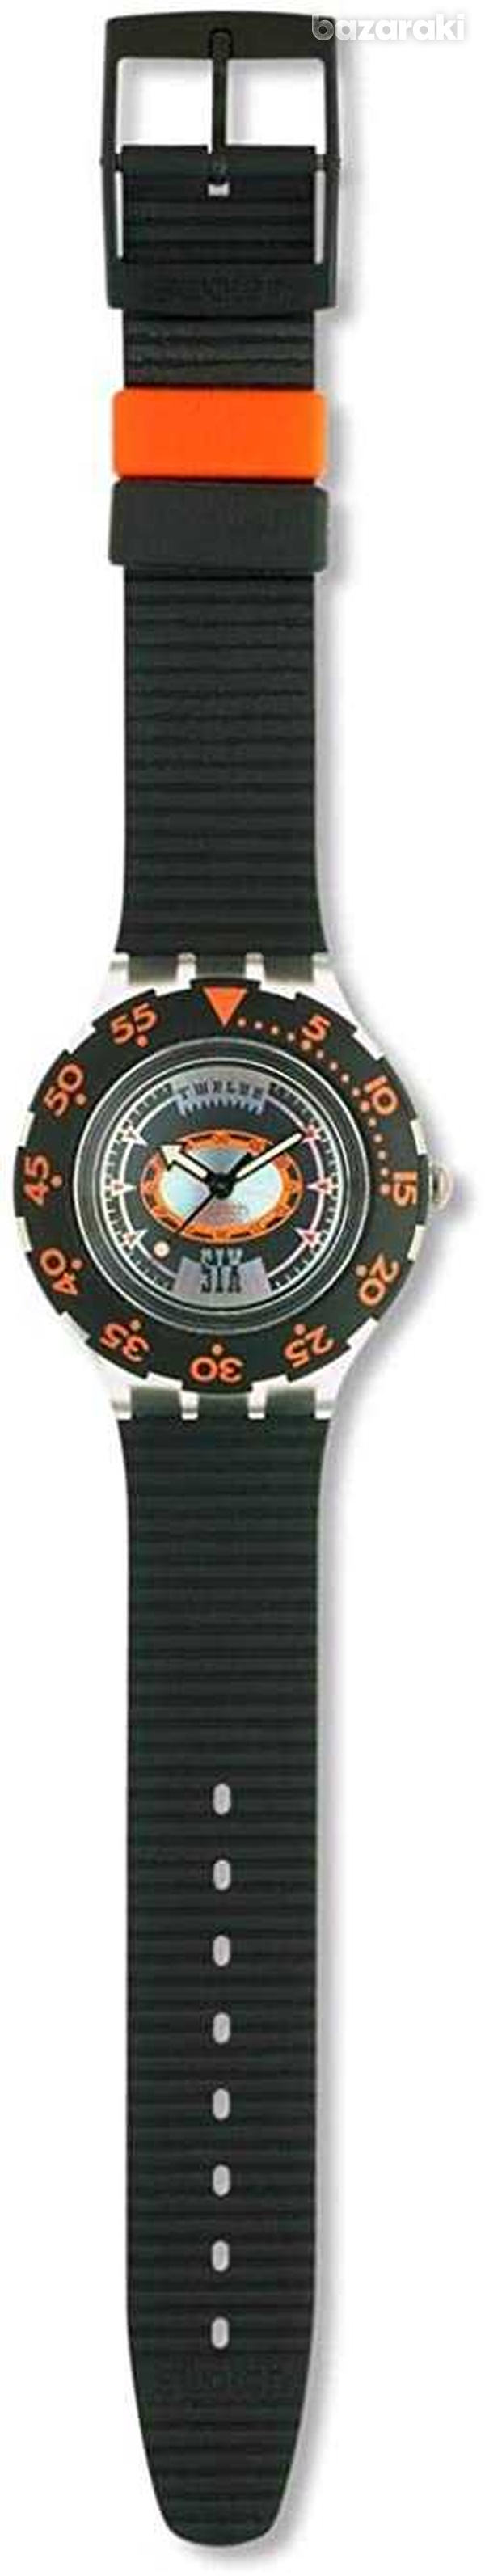 Swatch scuba 200 tech diving new watch-5